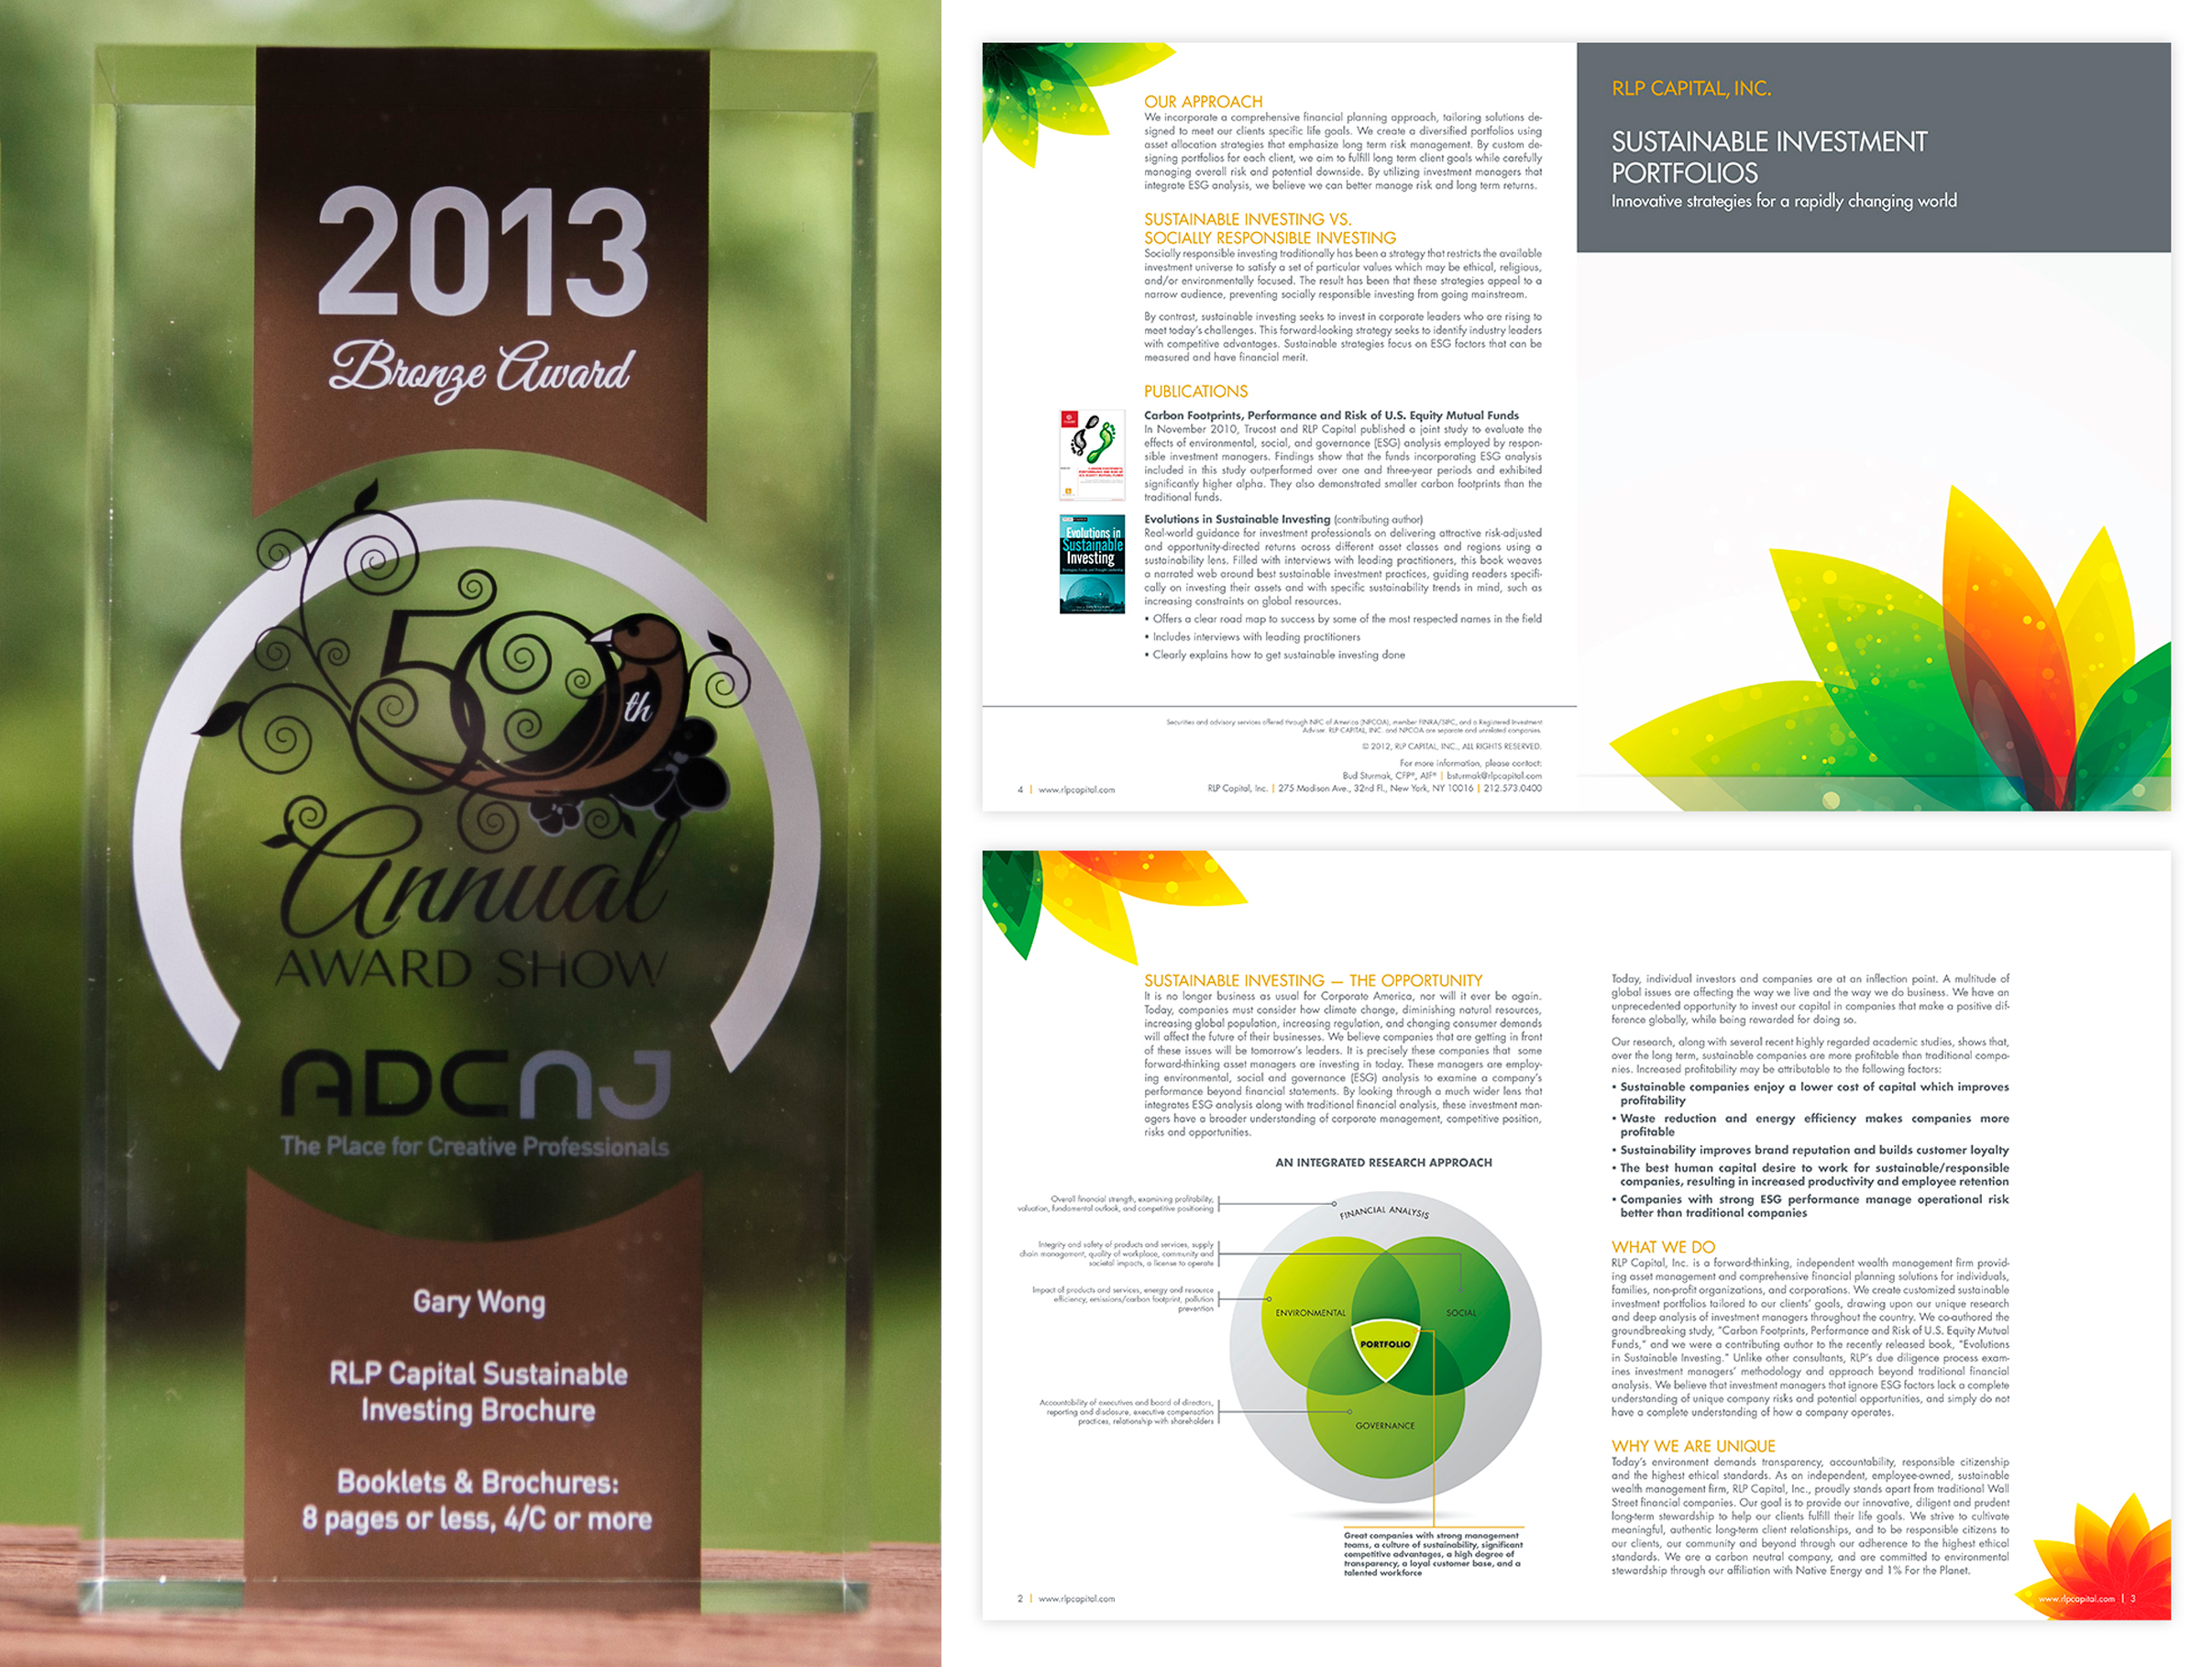 """RLP Capital's Sustainable Investing Brochure takes a Bronze in the category of """"Booklet & Brochures: 8 pages or less, 4/c or more"""""""